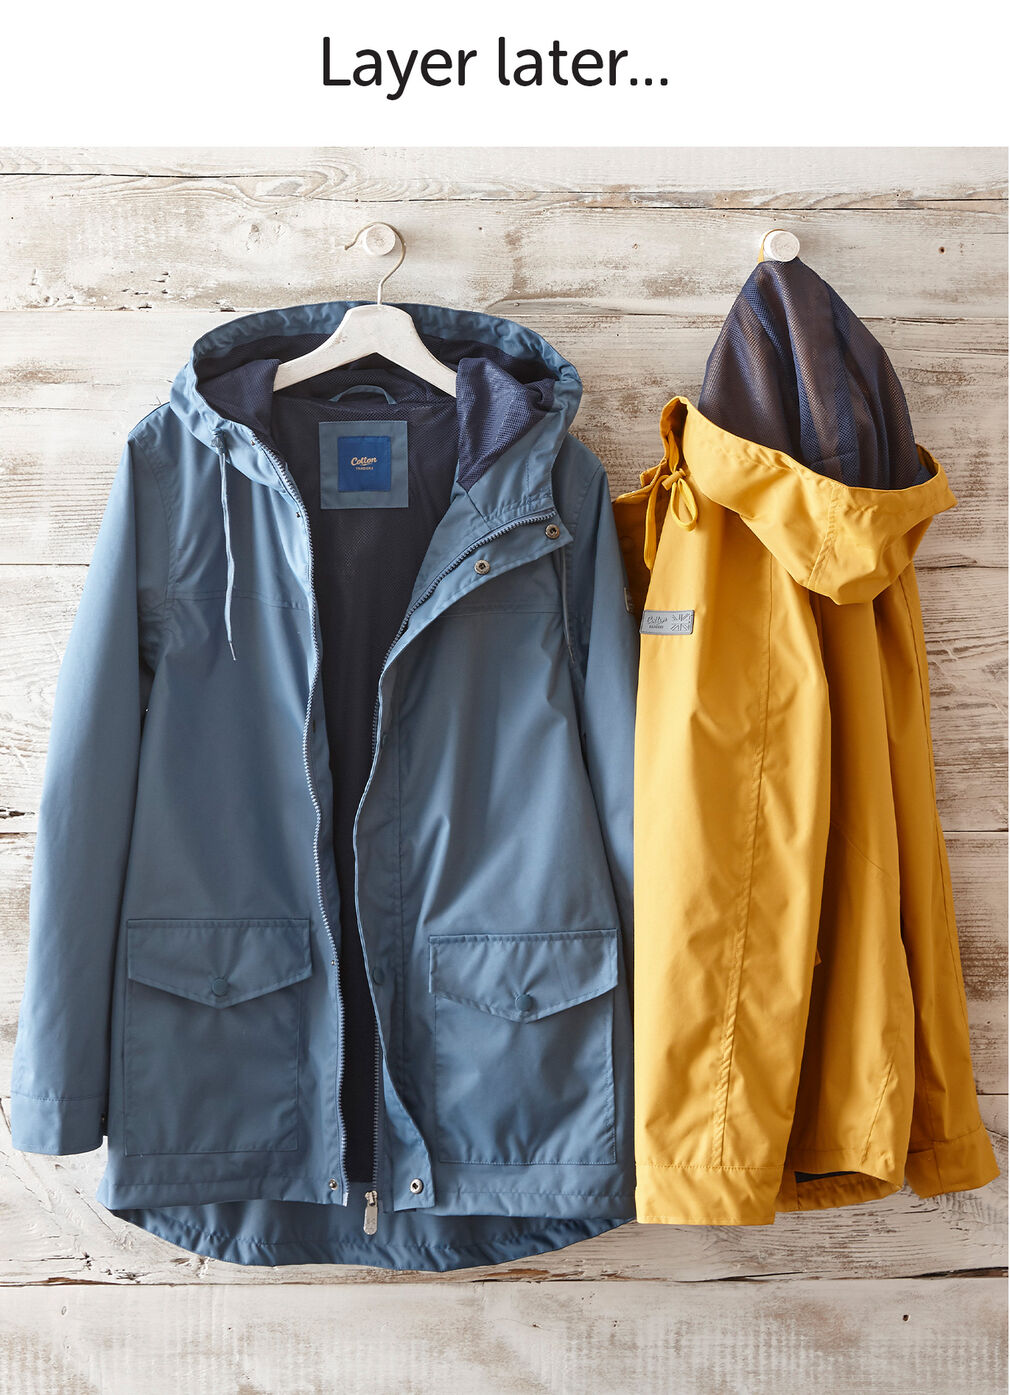 Wear Today Layer Tomorrow Inspirations | Woodland Lightweight Waterproof Jacket | By Cotton Traders